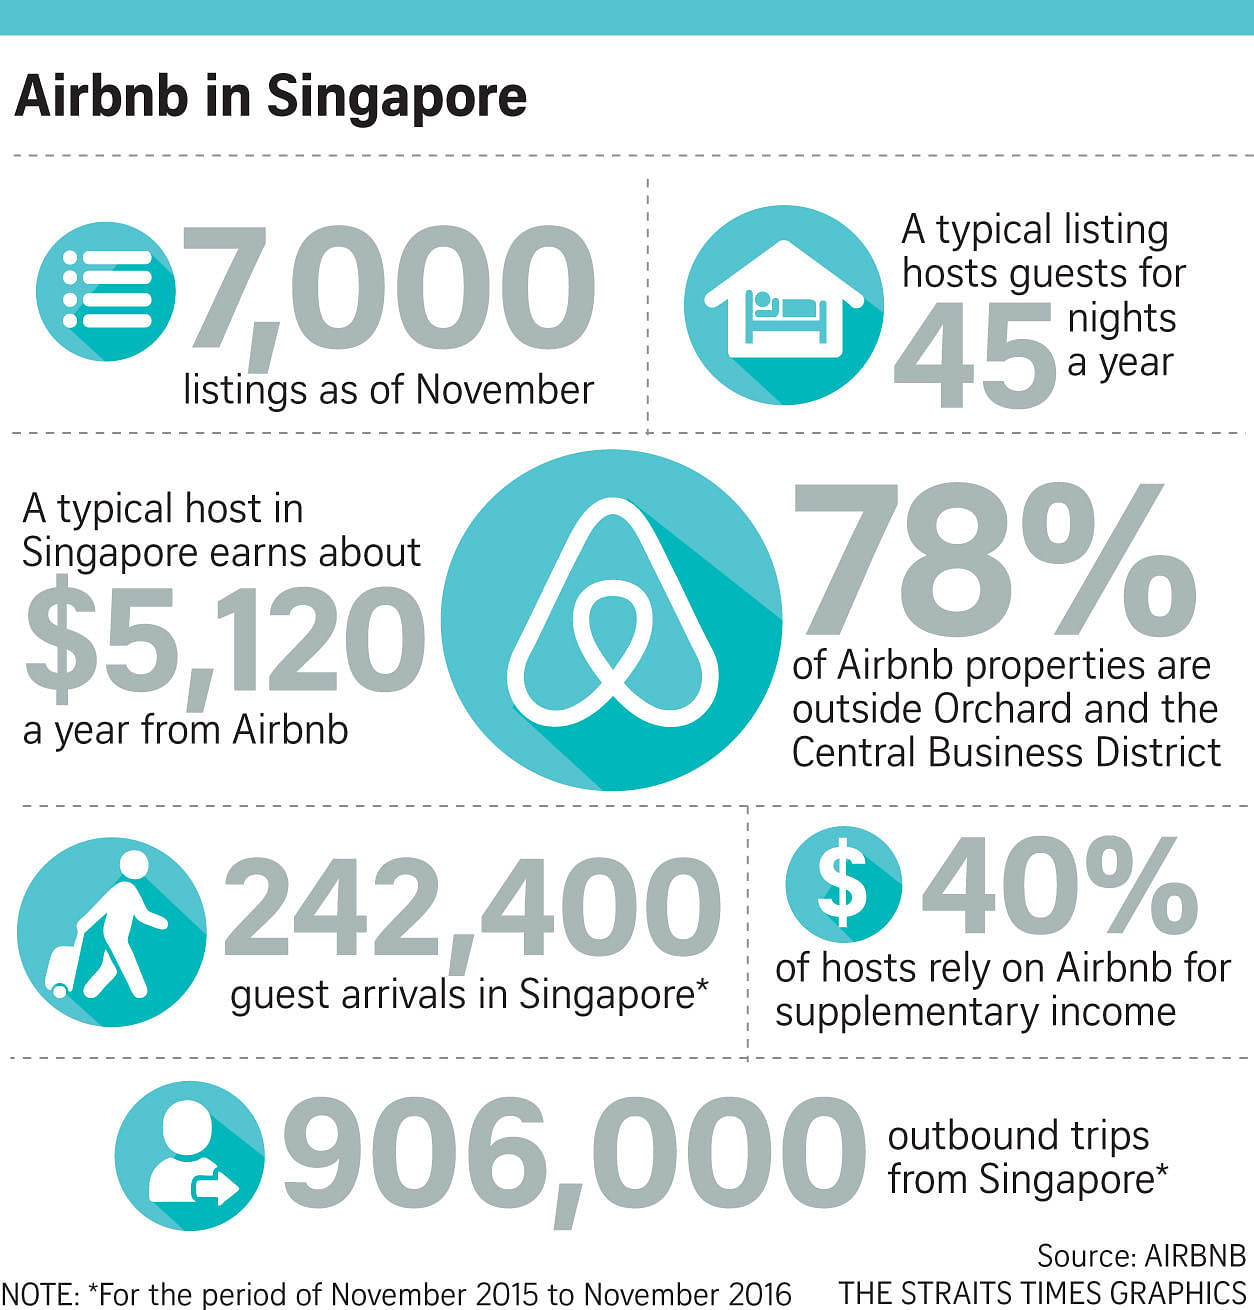 Average Singapore Airbnb host 'makes about $5,000 a year', Housing